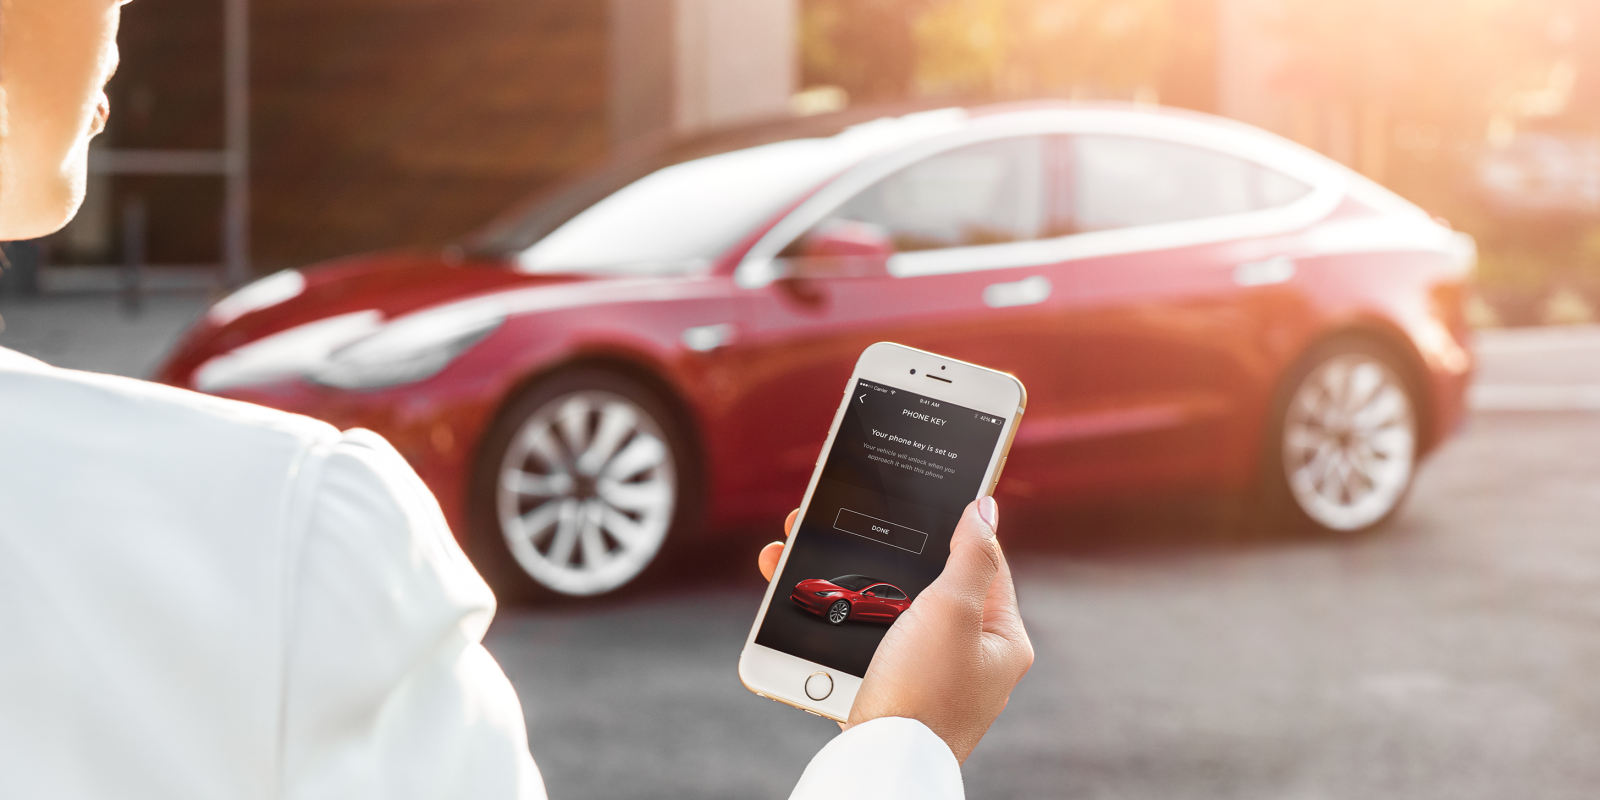 Your Tesla could help you get cheaper insurance through data